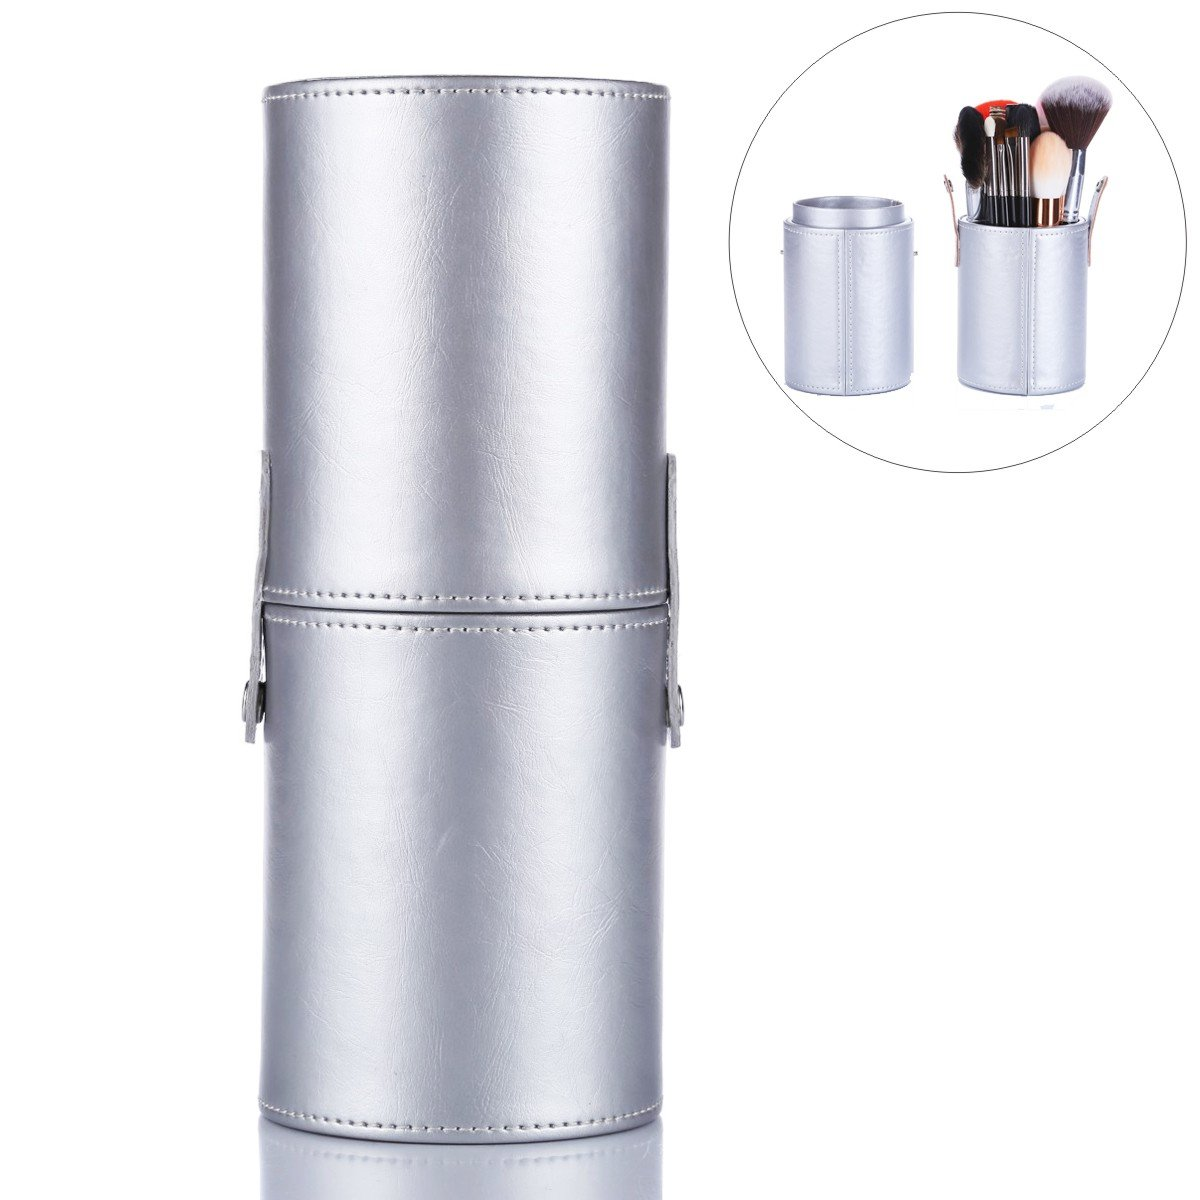 EMOCCI Makeup Brush Holder Large Capacity Make up Brush Case Organizer Cosmetic Cup Cylinder Storage Box Bag Pu Leather (Silver)